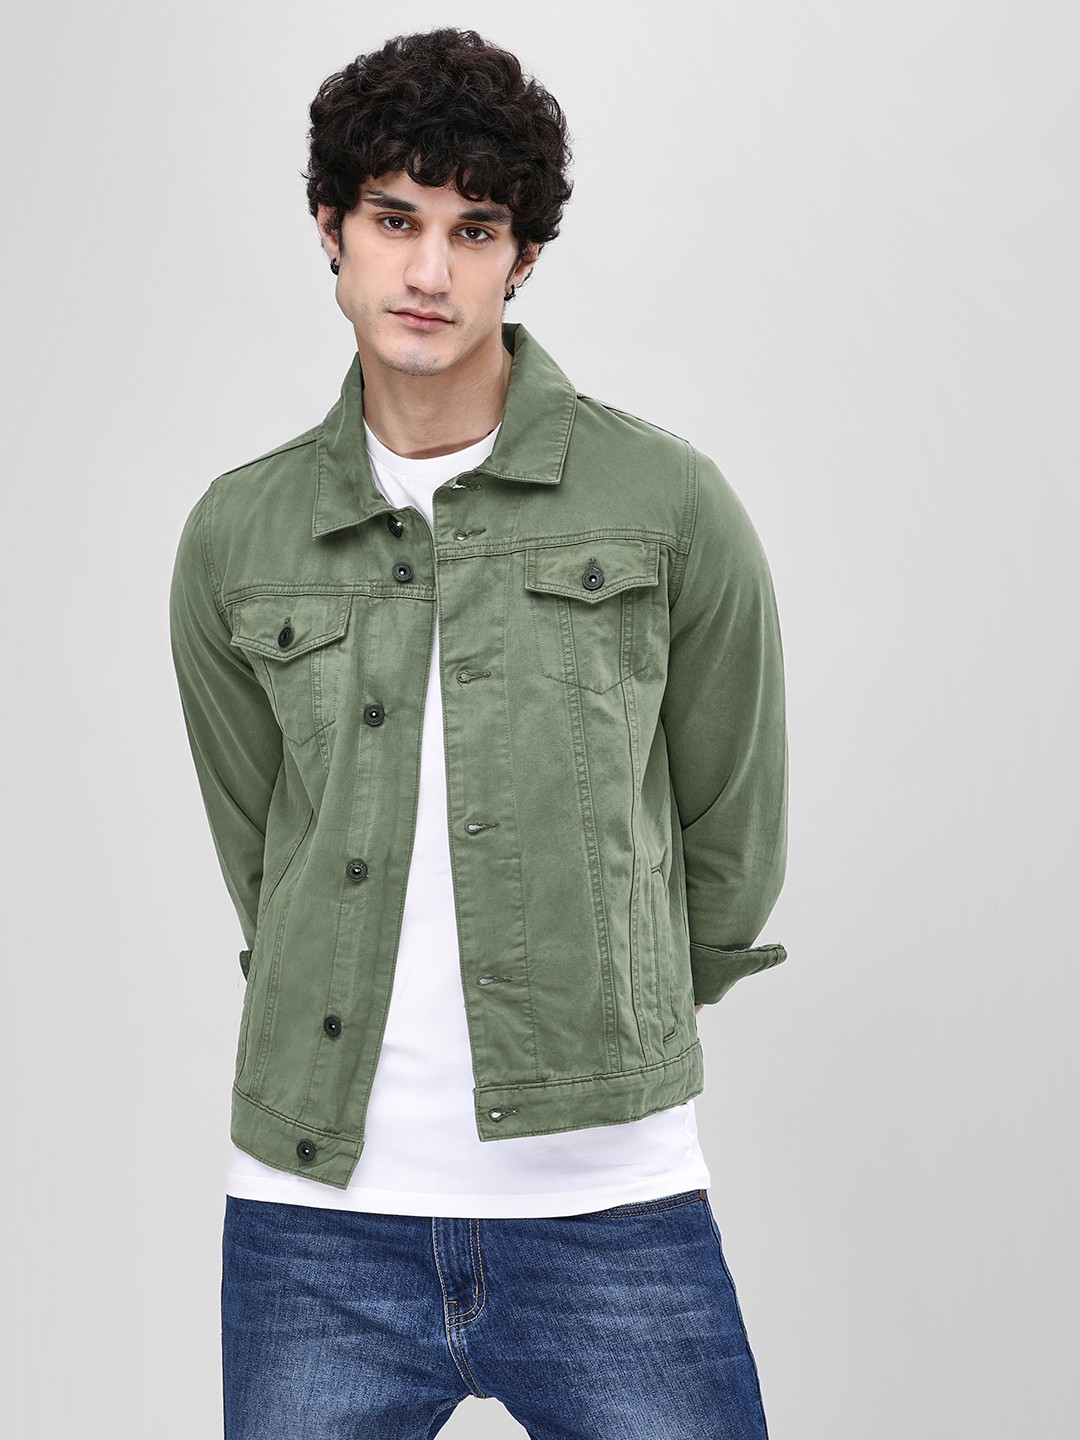 the latest f0478 07a4c Buy Blue Saint Green Twin Patch Pocket Denim Jacket for Men ...